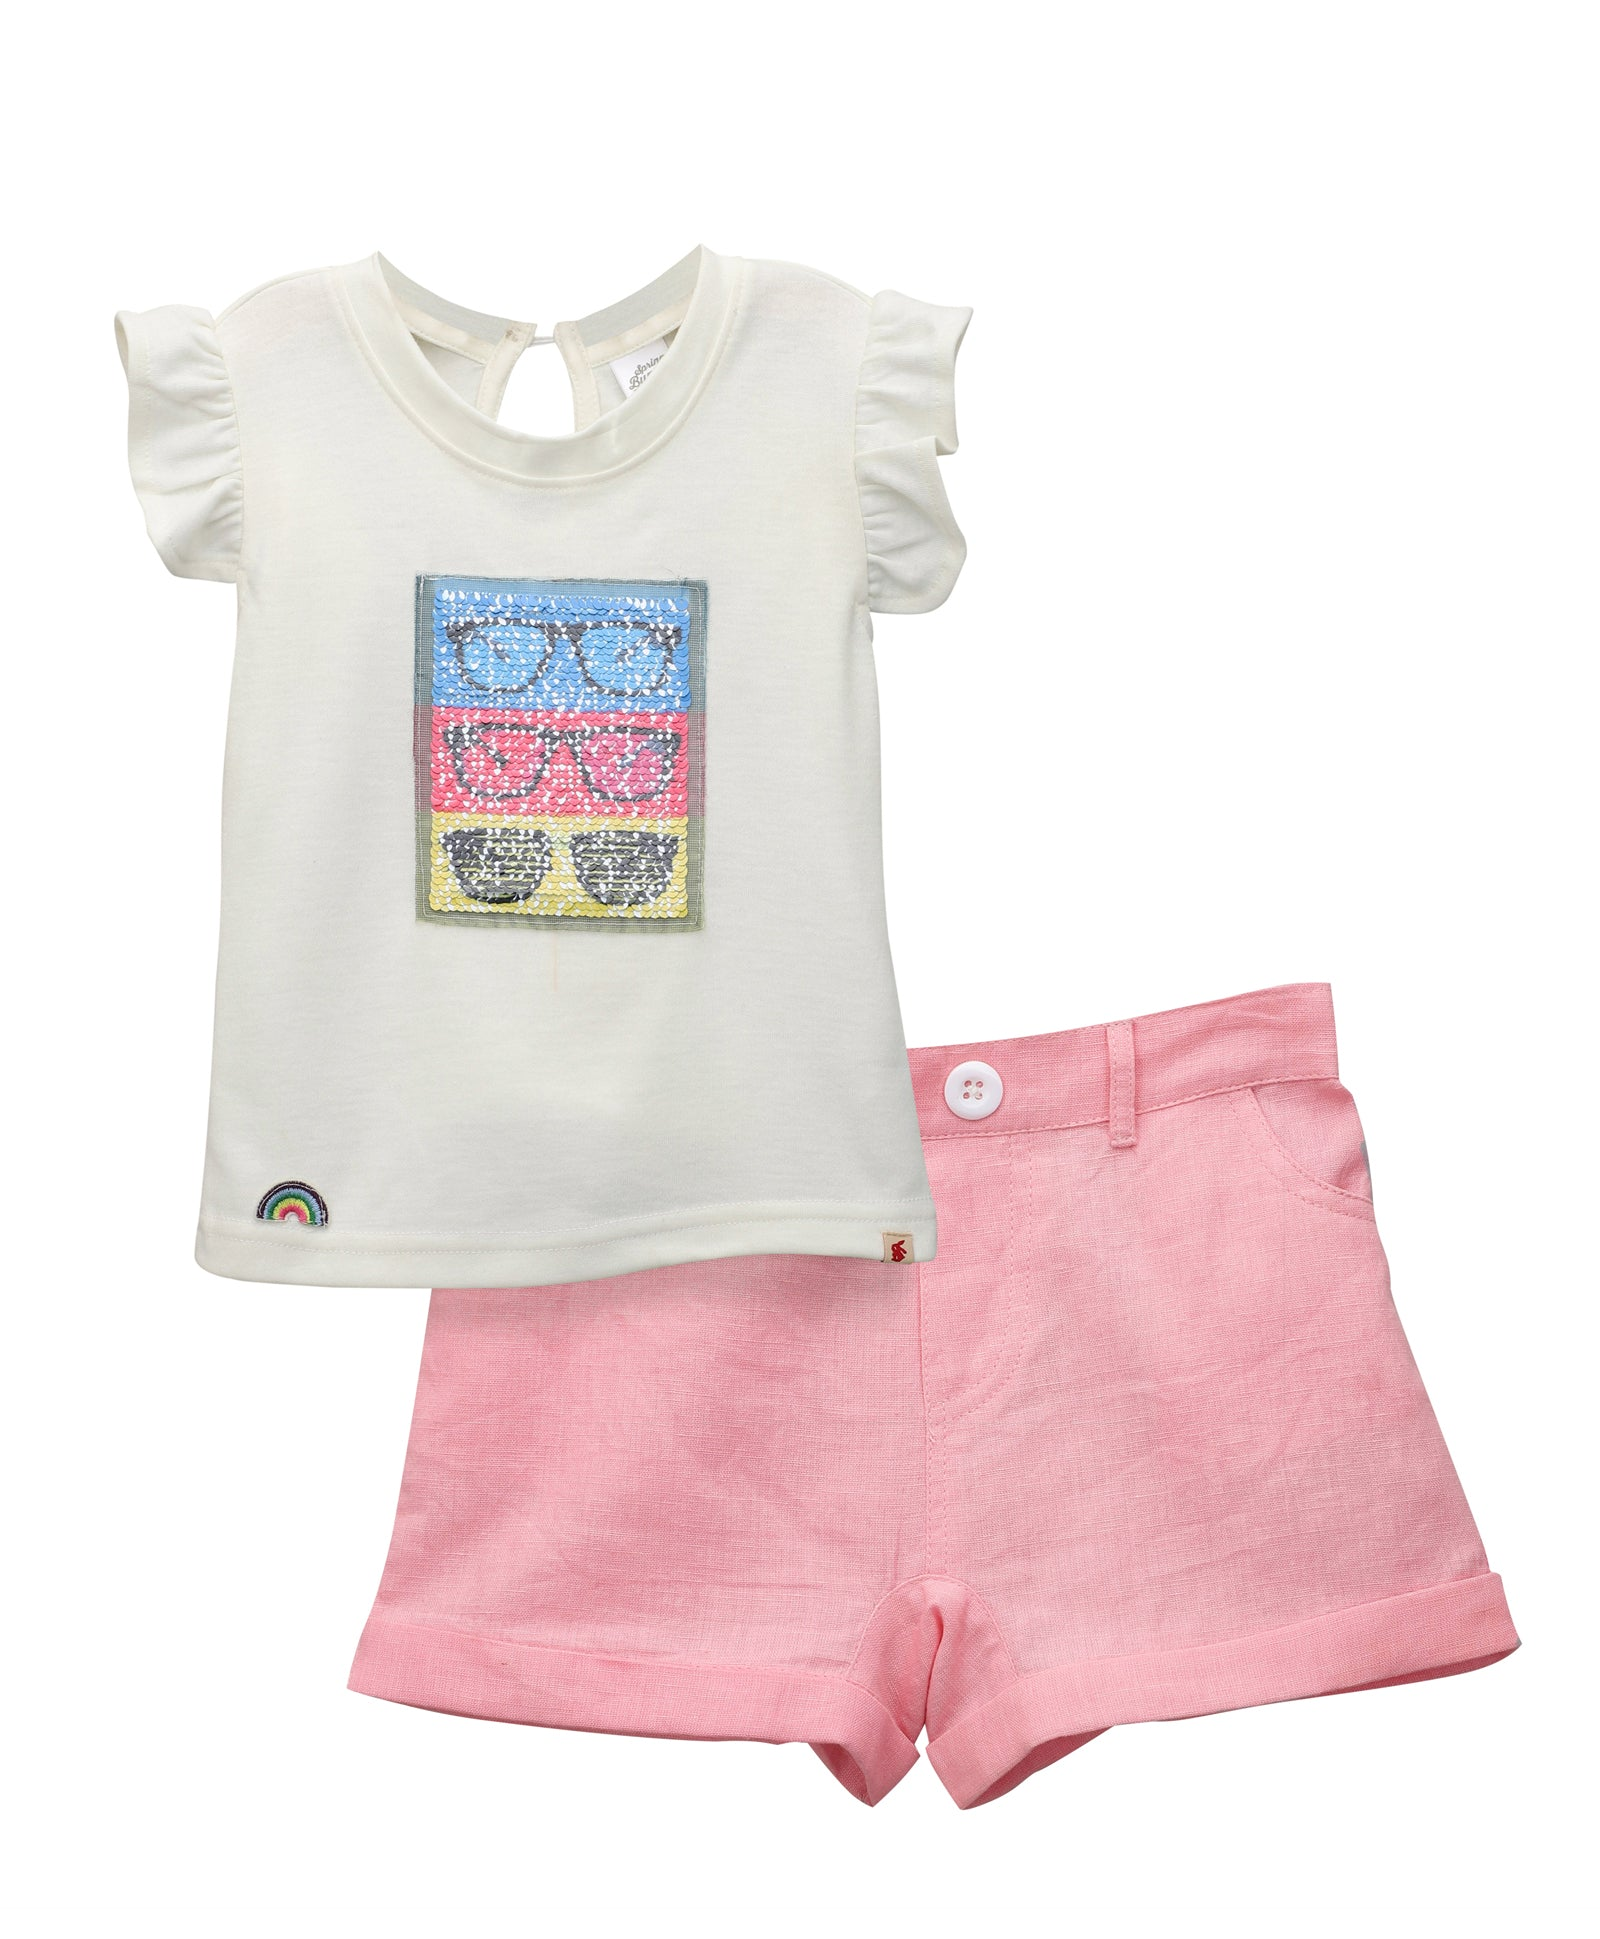 Toddler Girl ' Pearly '  Pink Short with Cotton Knitted Top